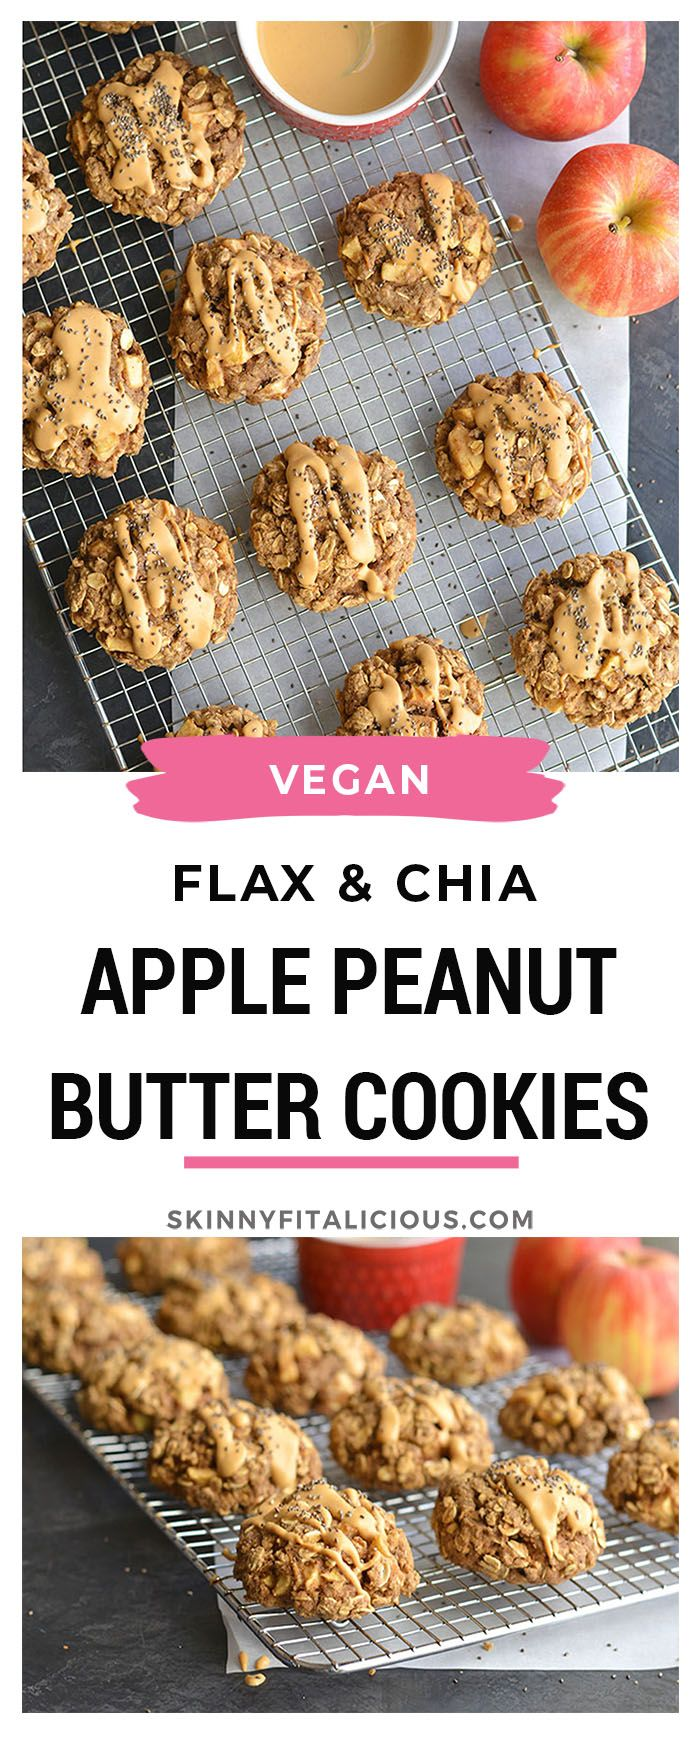 Vegan Apple Peanut Butter Cookies Made With Flax Chia And